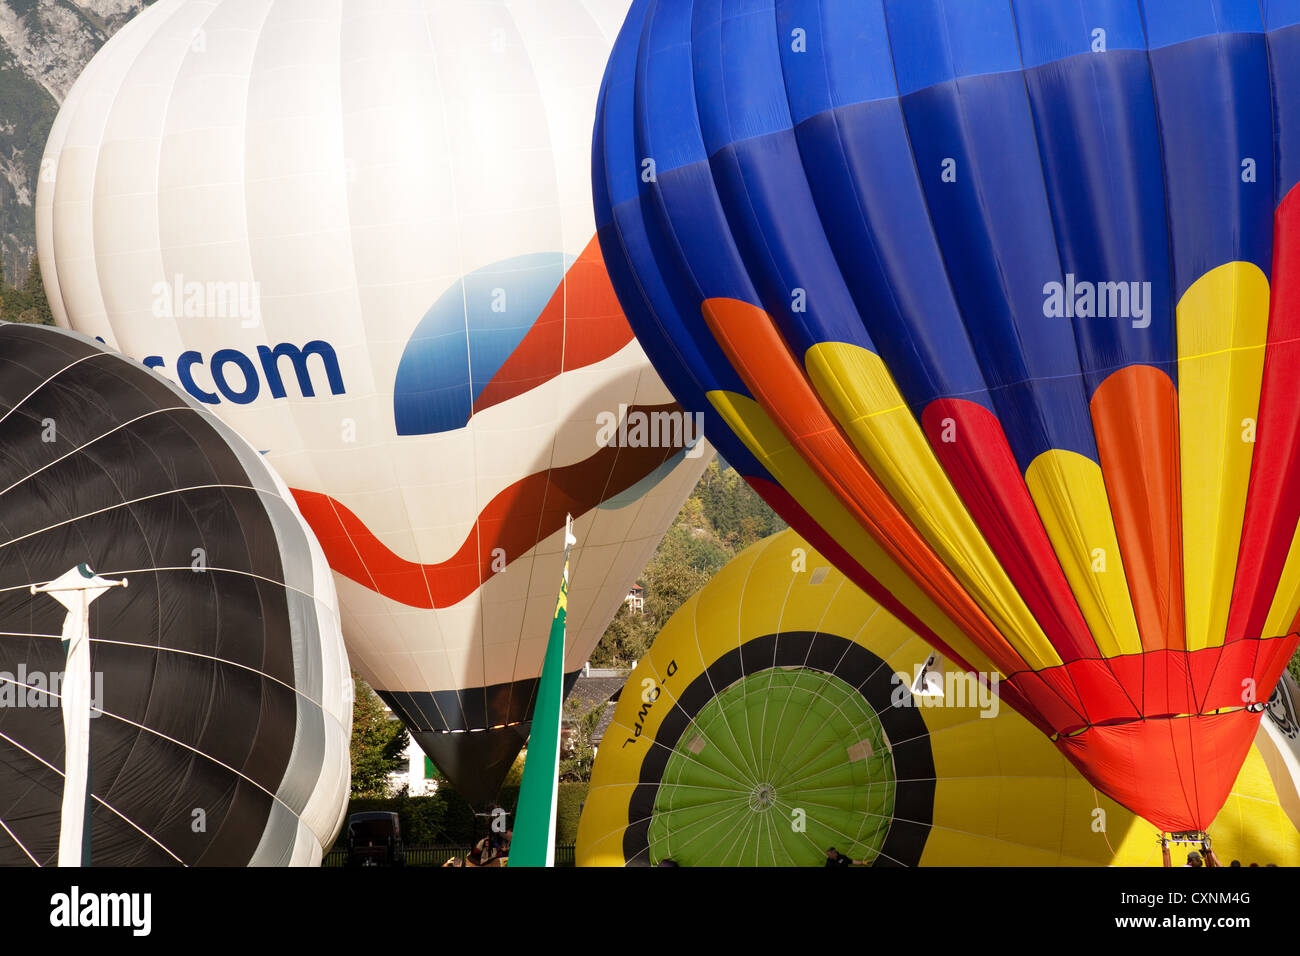 Colorful hot air balloons being inflated, Flims Switzerland Europe Stock Photo